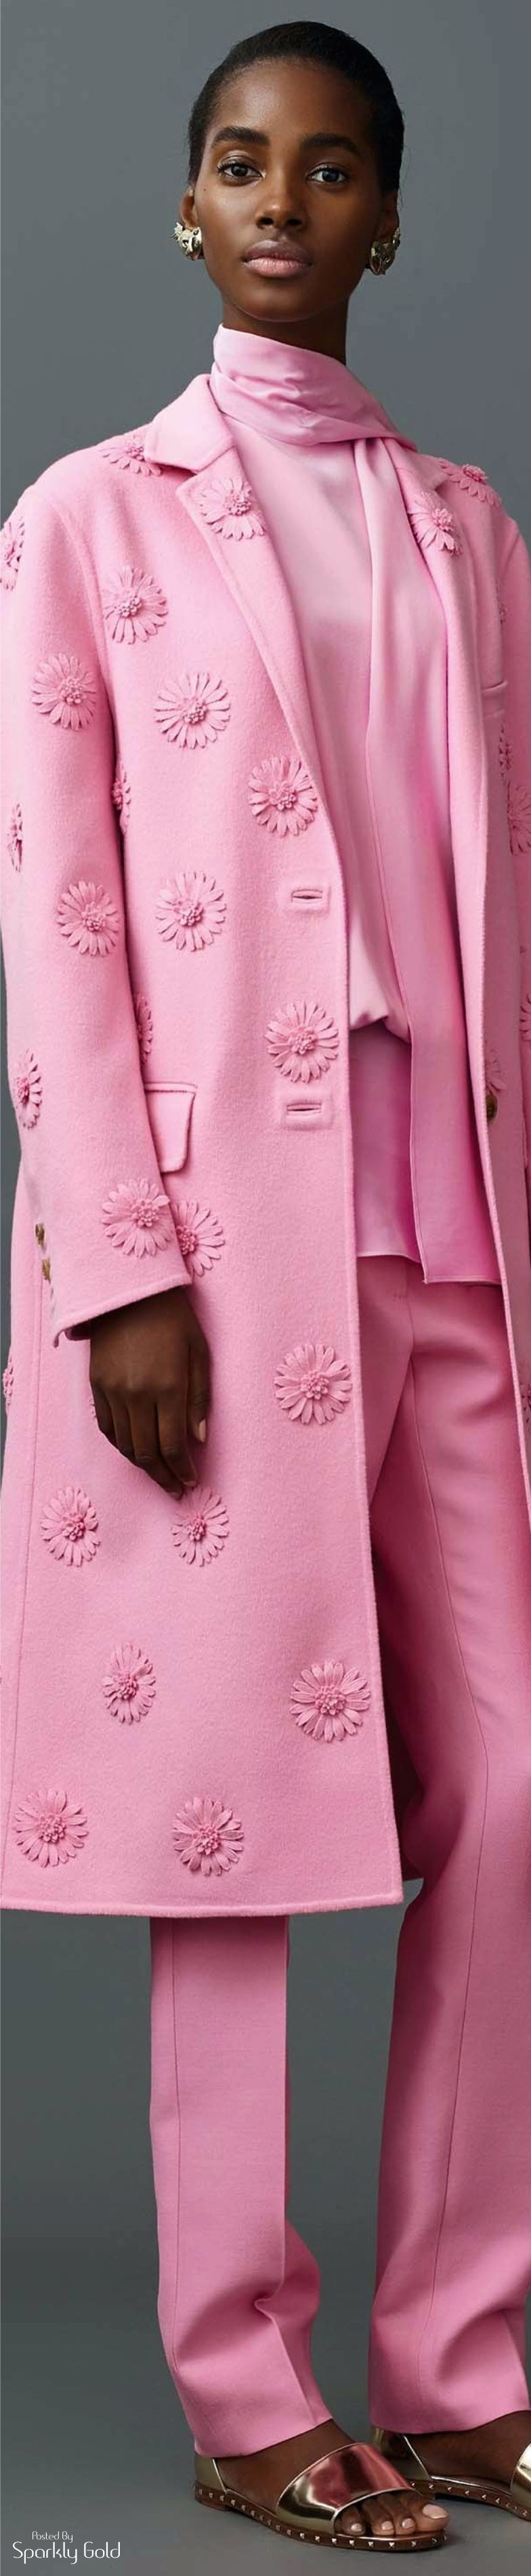 Valentino Resort 2017 | fashion, sketches, shoes and bags ...